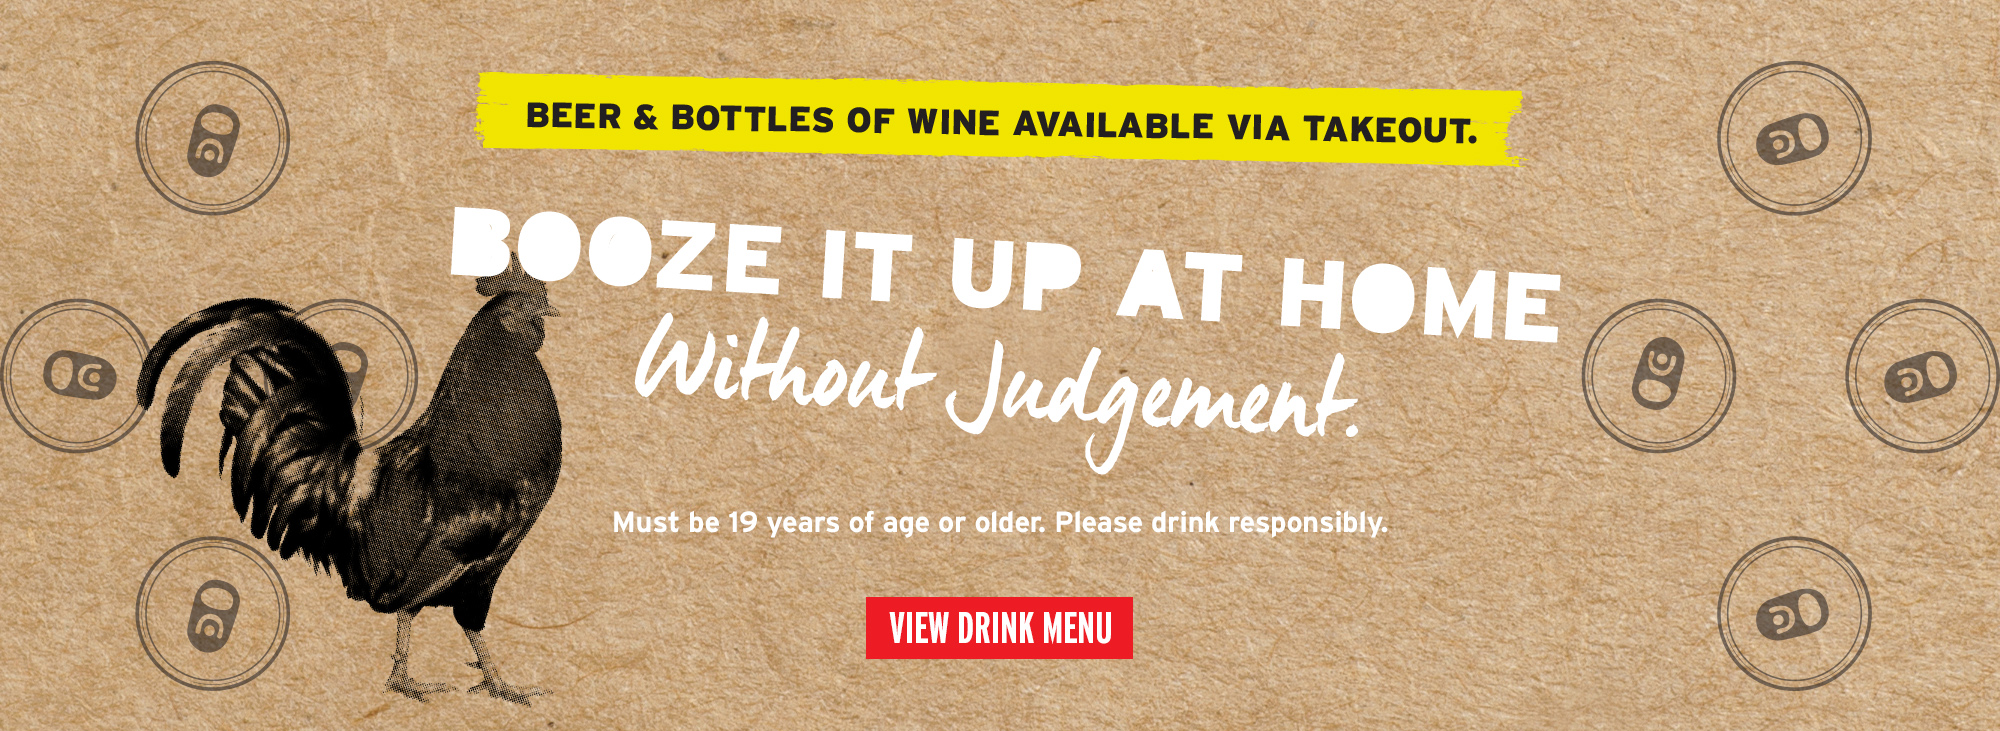 Beer and bottles of wine available via takeout. Booze it up at home without judgement. Must be 19 Years of age or older. Please drink responsibly. View Drink menu.